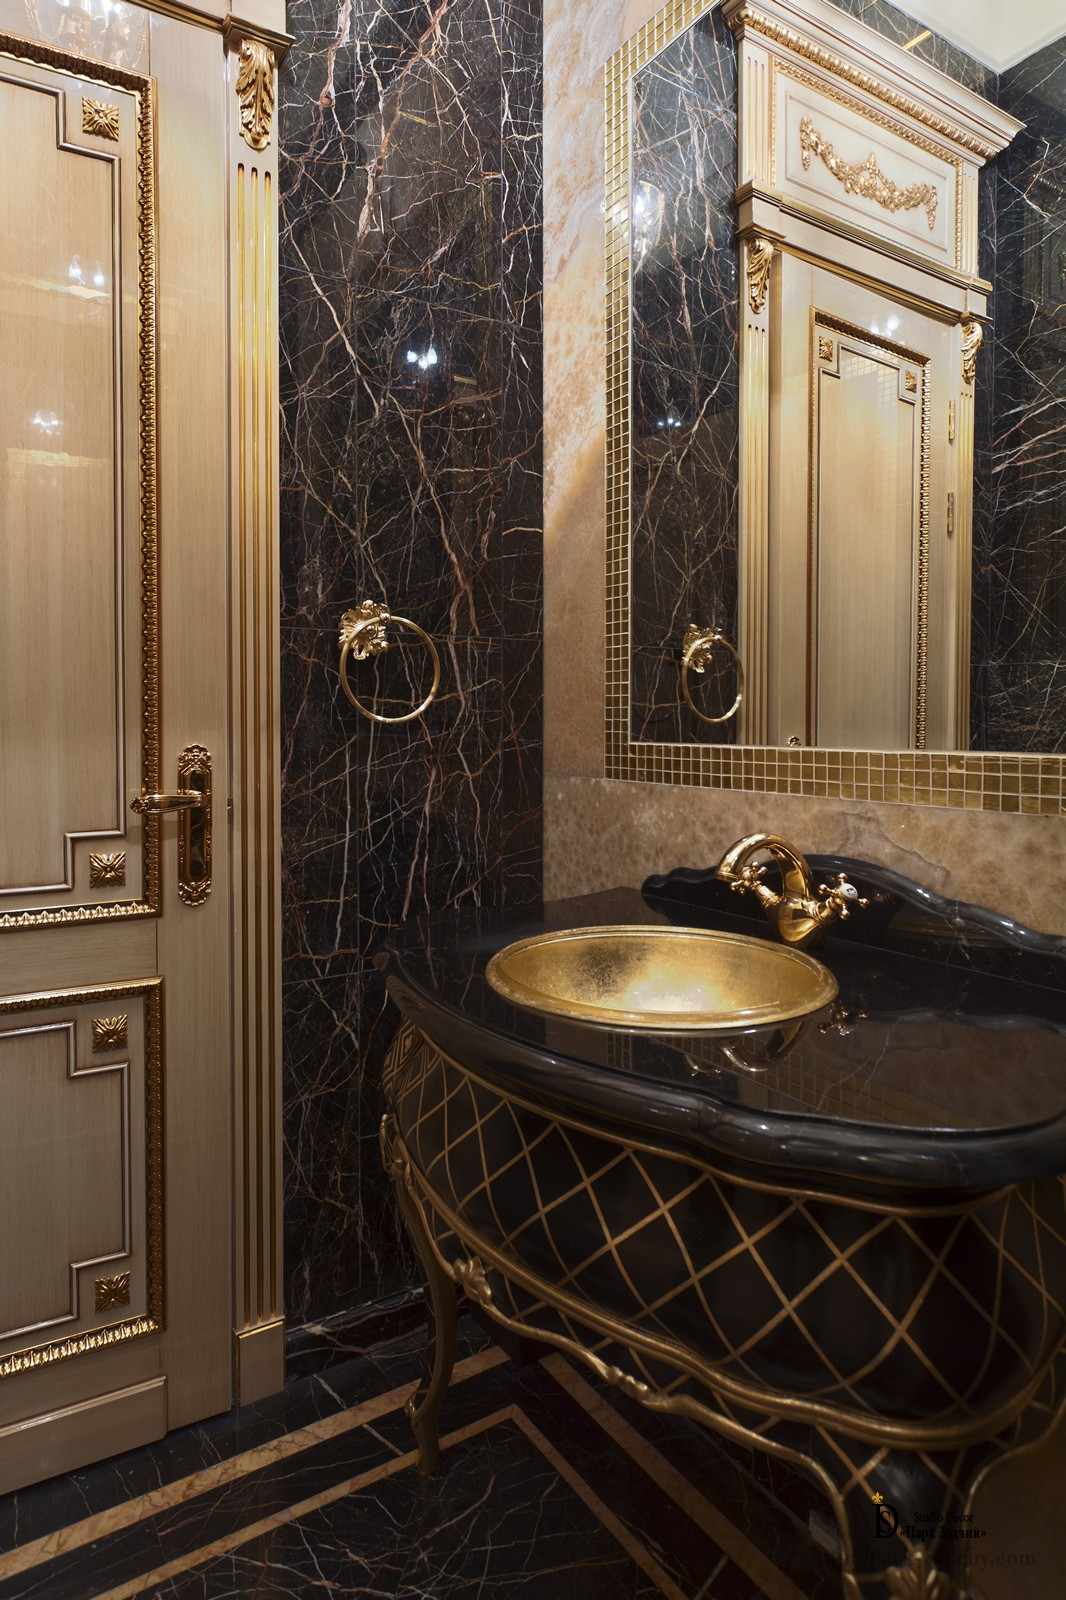 Expensive interior bathroom decorated with marble